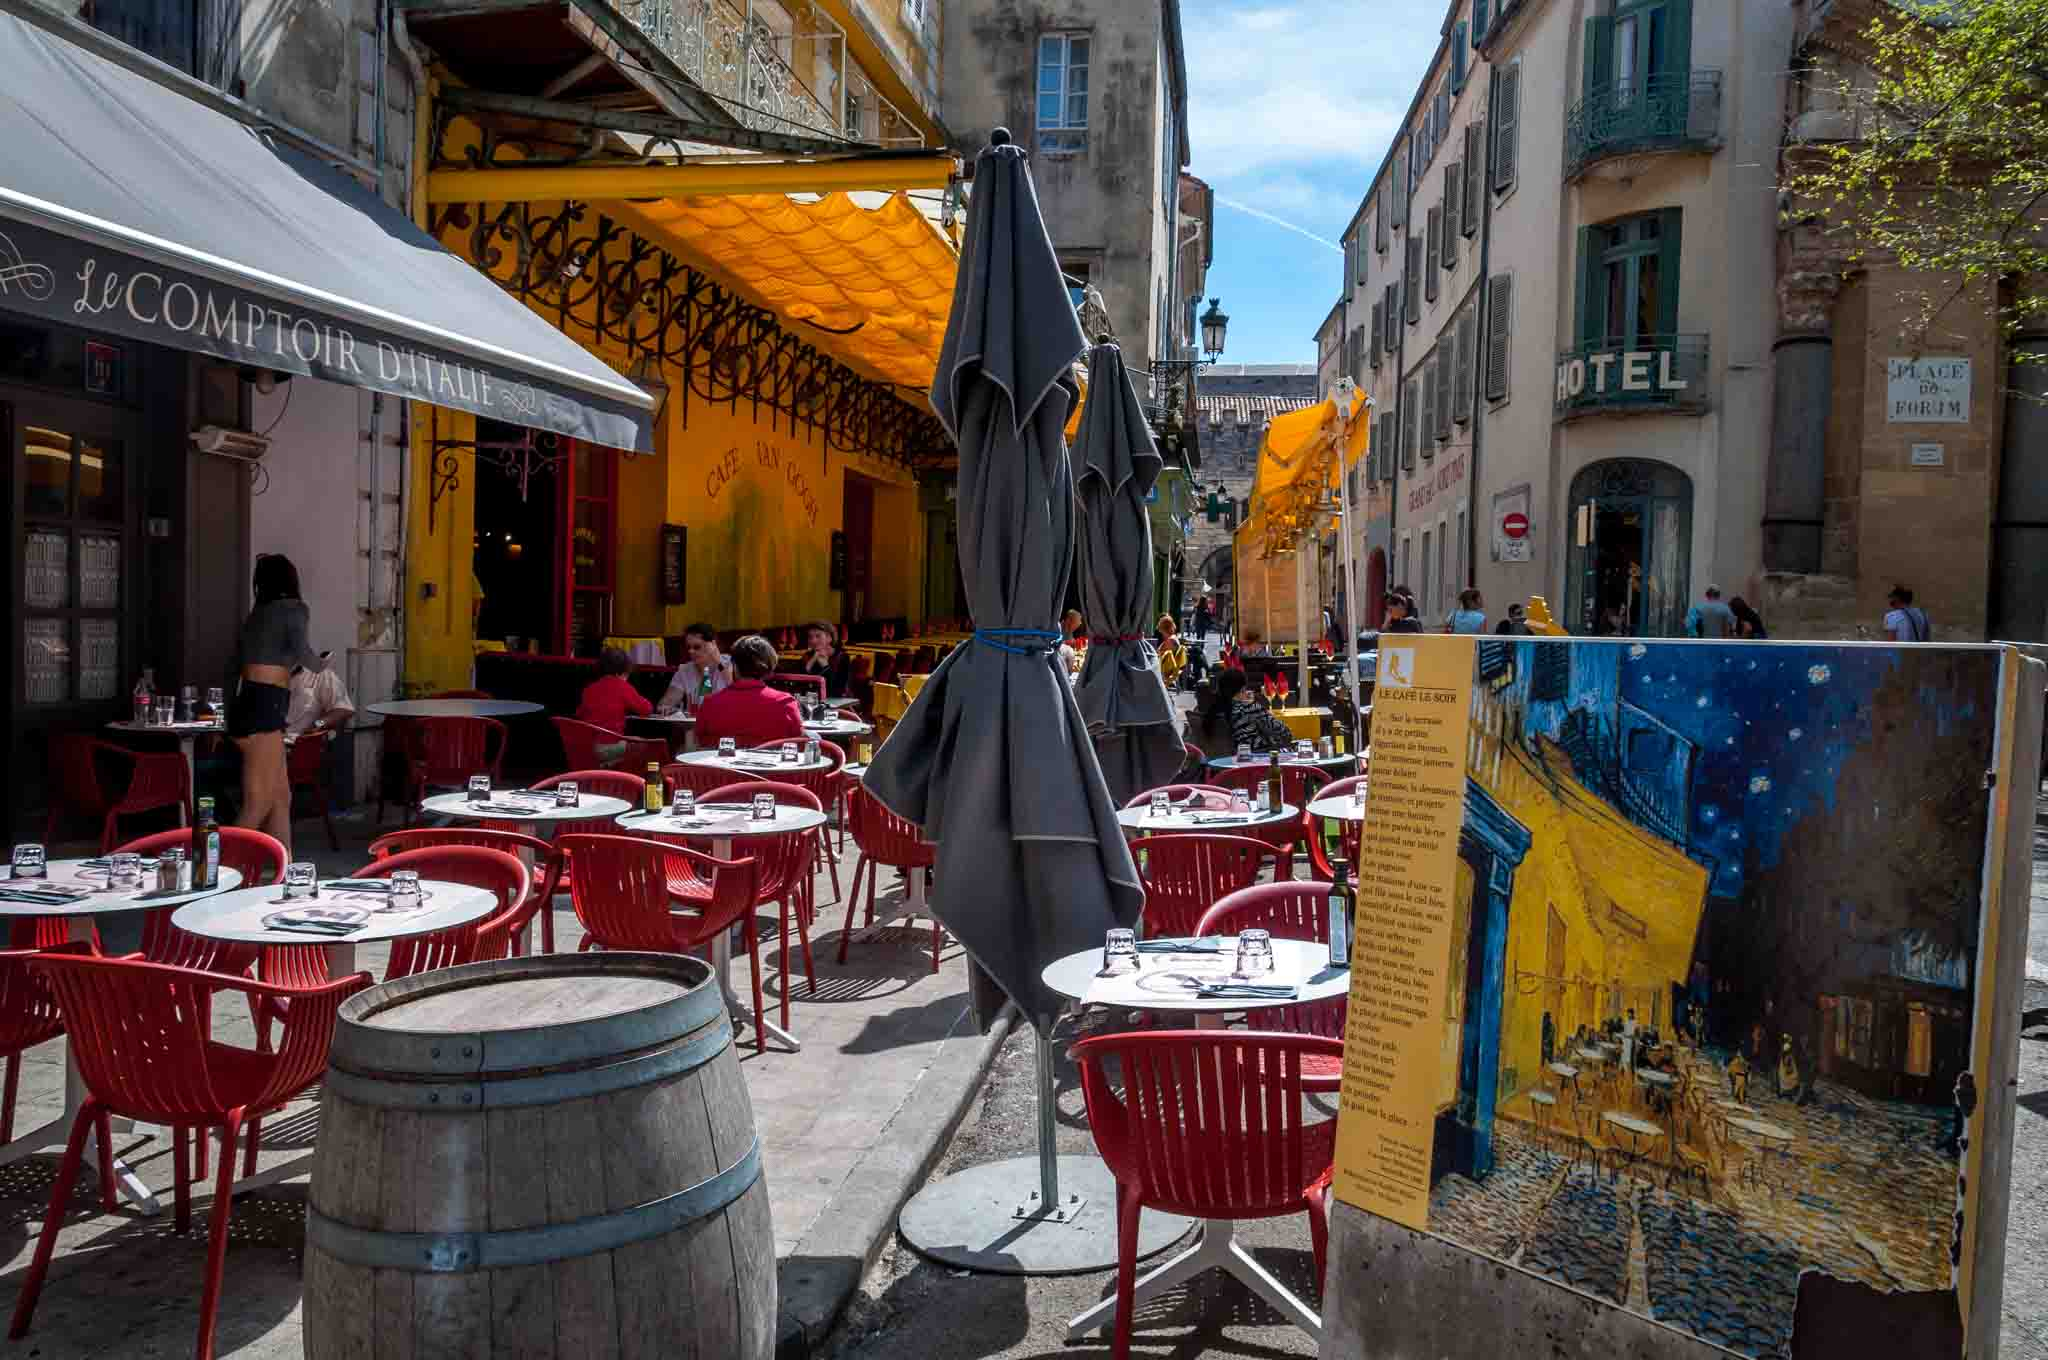 See the Van Gogh-related sites on your south of France vacation